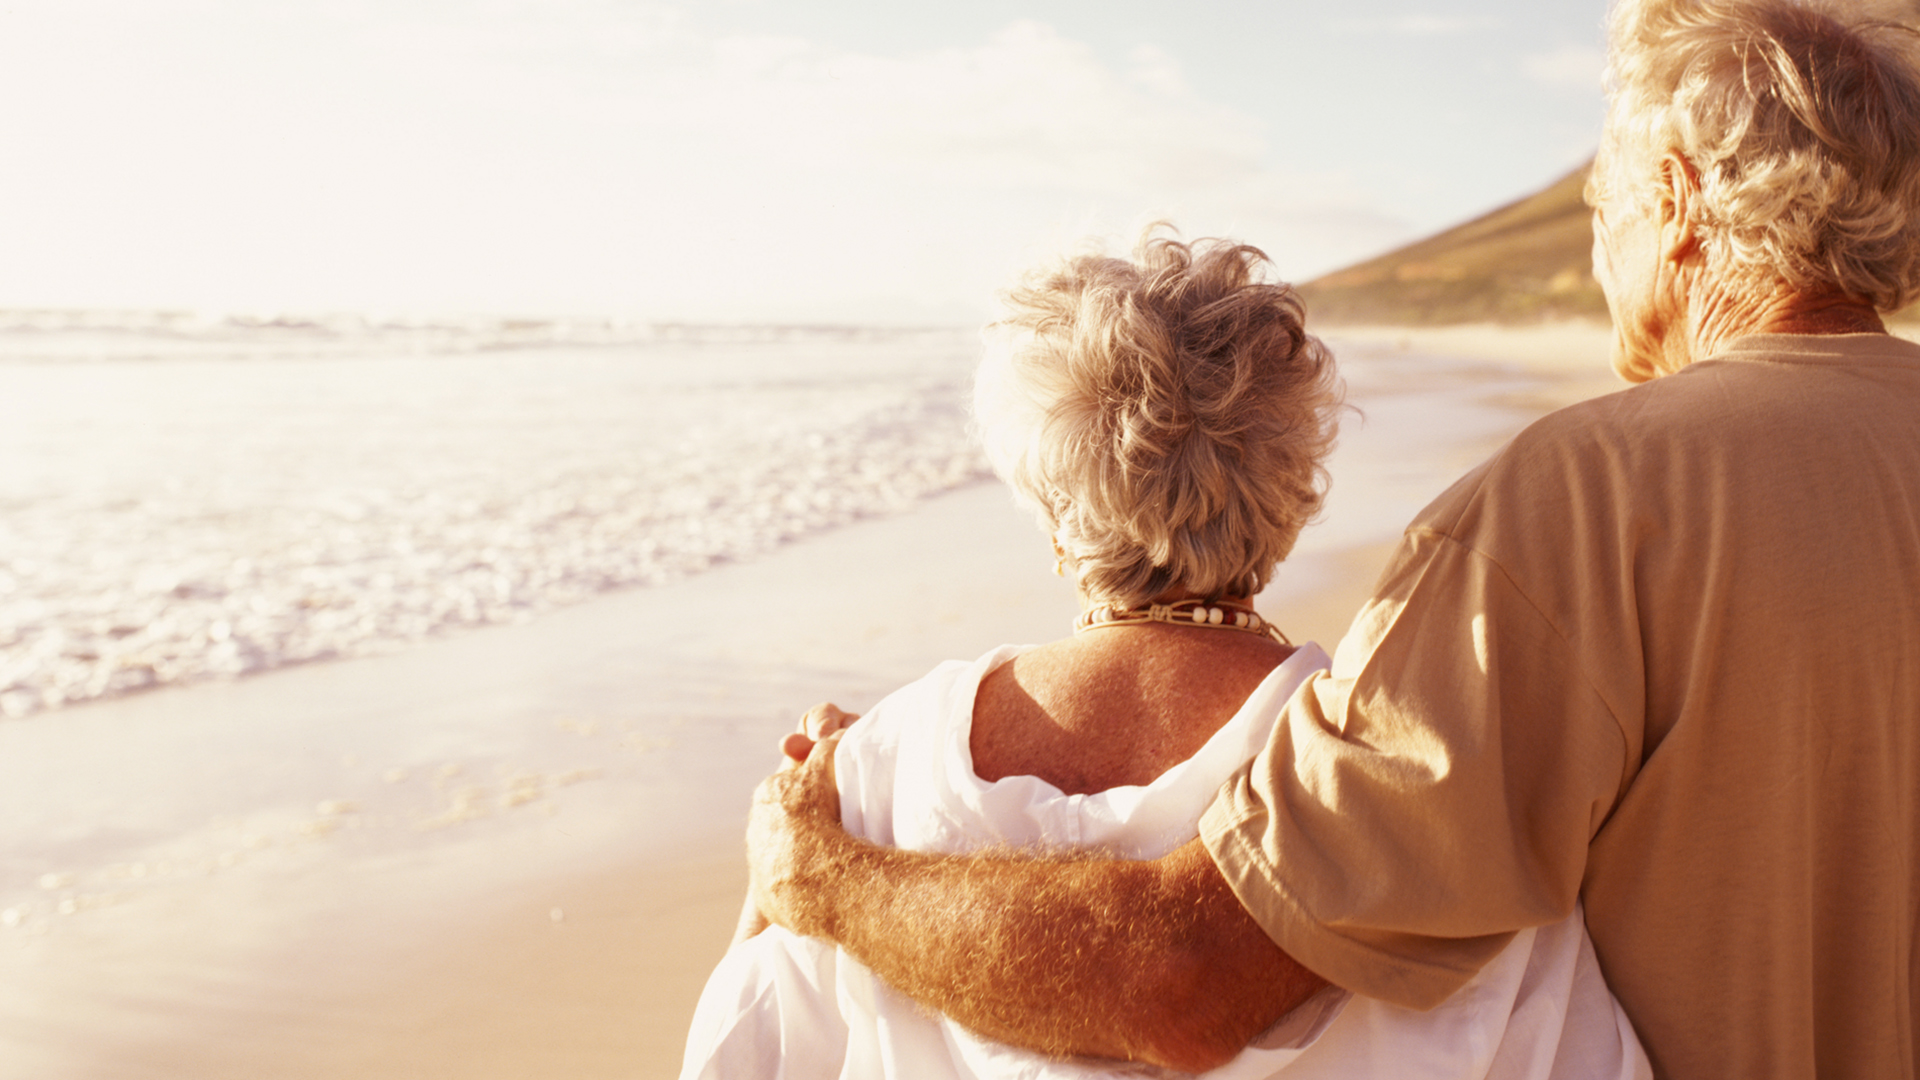 Retiring? Consider These 3 Things to Avoid Running Out of Money